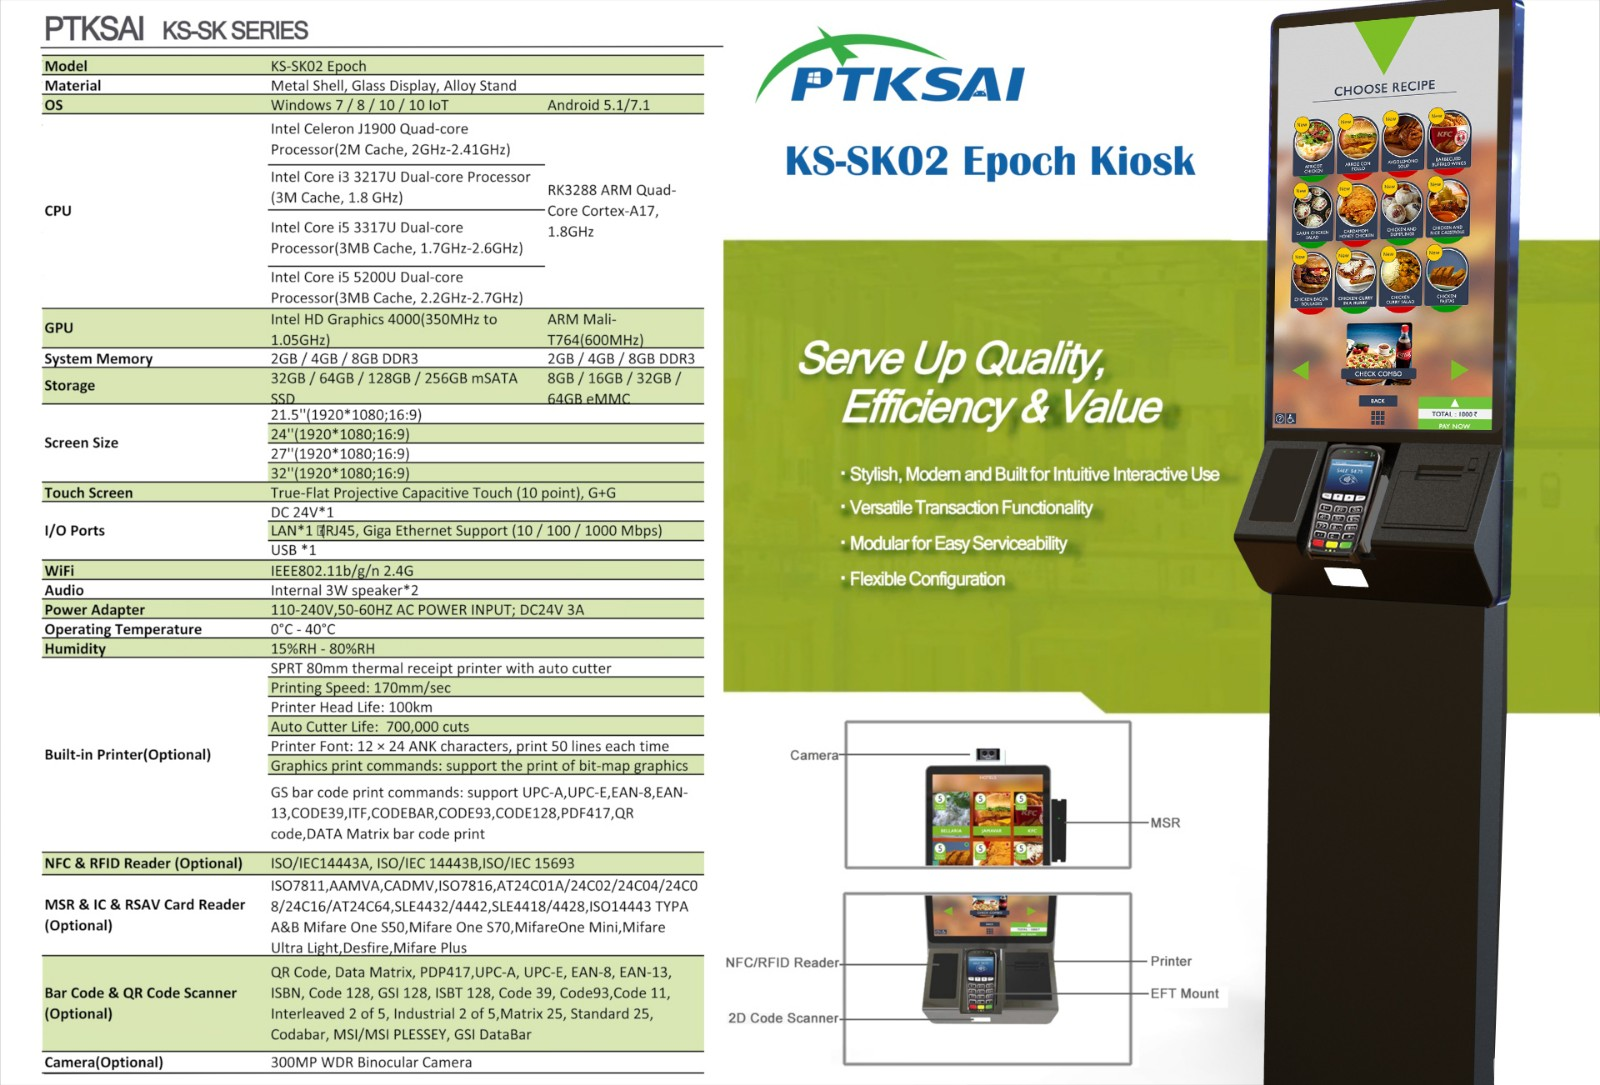 PTKSAI-Eye-catching Design - A Must For Kiosk Terminal